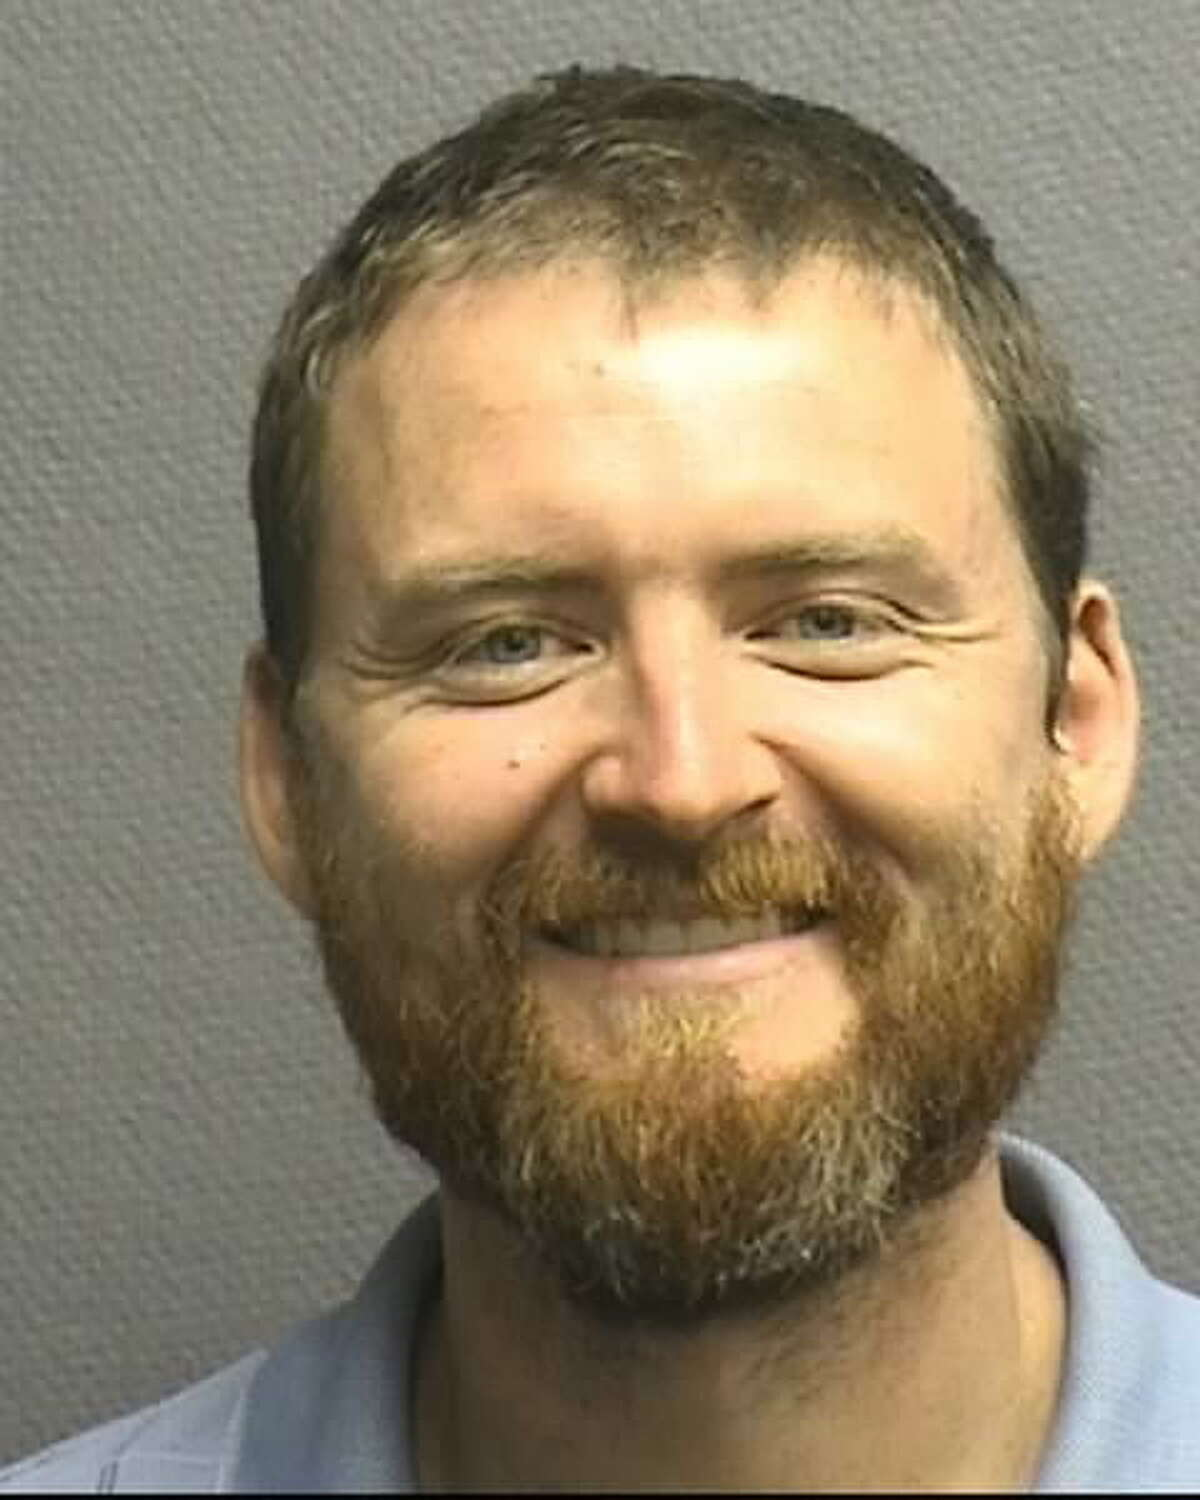 Richard Trudeau, 32, was one of six people arrested Sunday, June 28, 2015 at Lakewood Church in southwest Houston after allegedly trespassing and disrupting a church service, according to police.